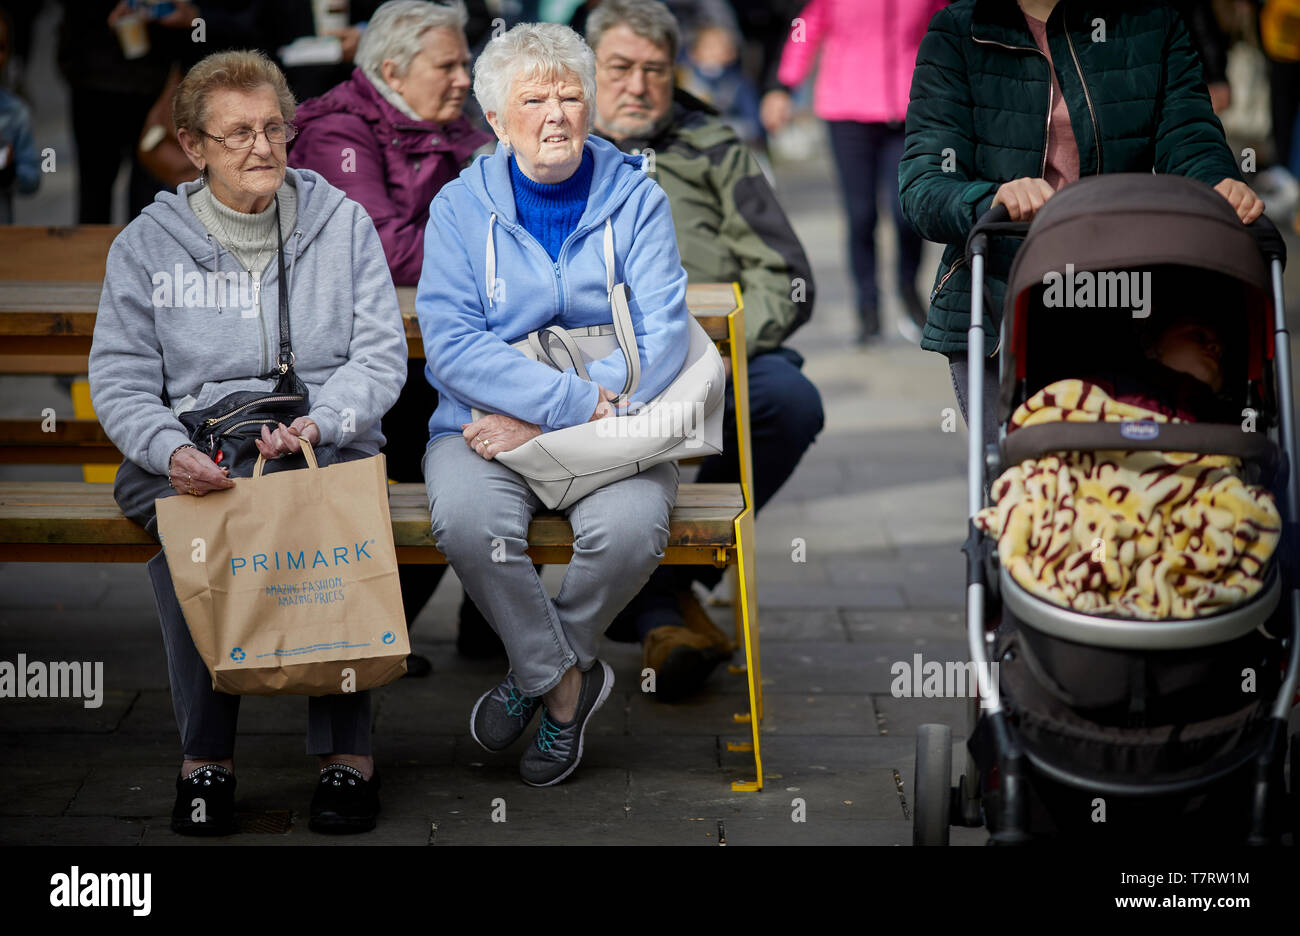 Newcastle upon Tyne, OAP resting in the main shopping area - Stock Image